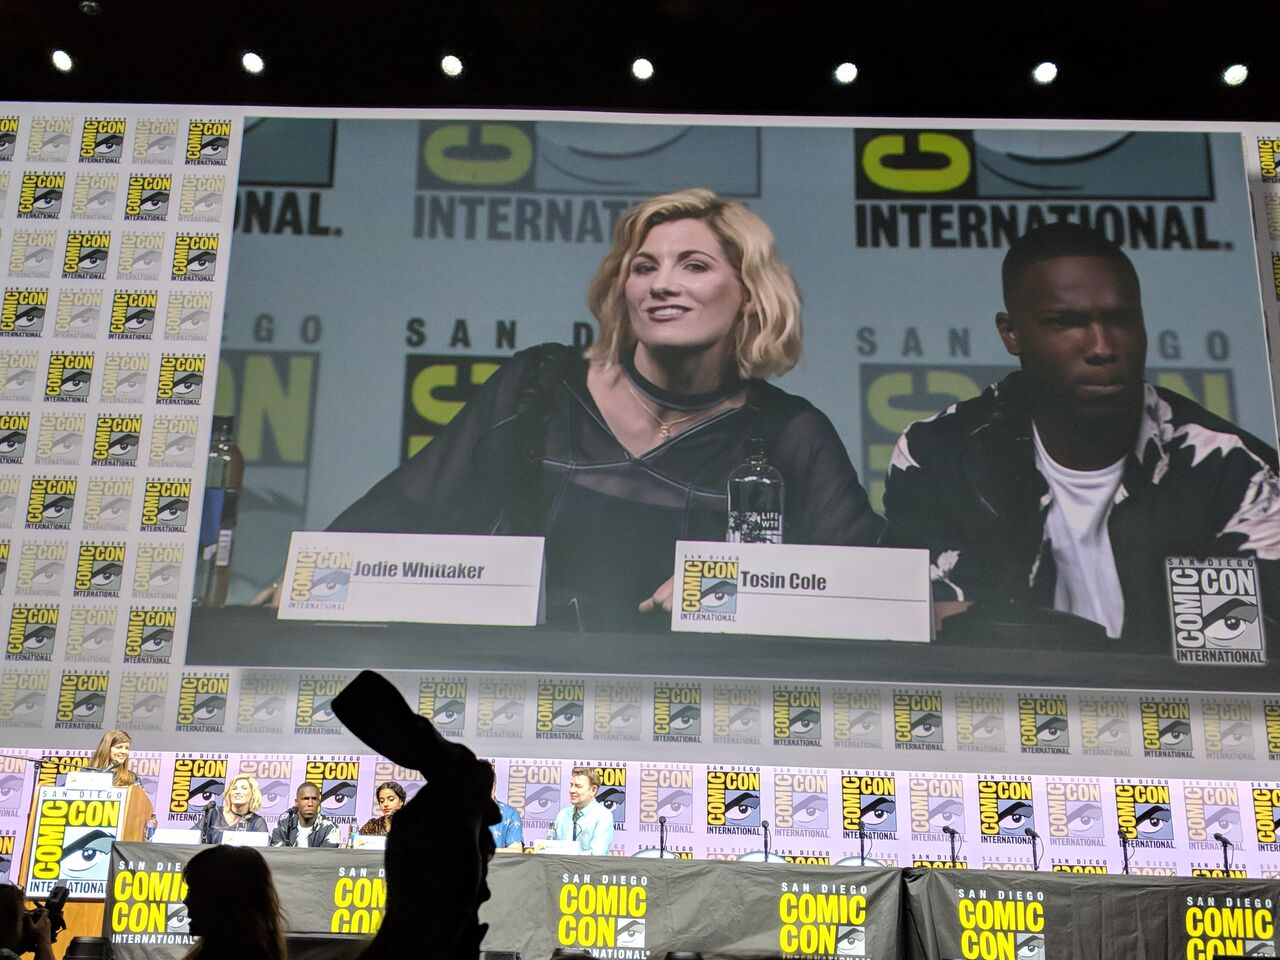 JODIE WHITTAKER and TOSIN COLE  Dr. Who  panel.